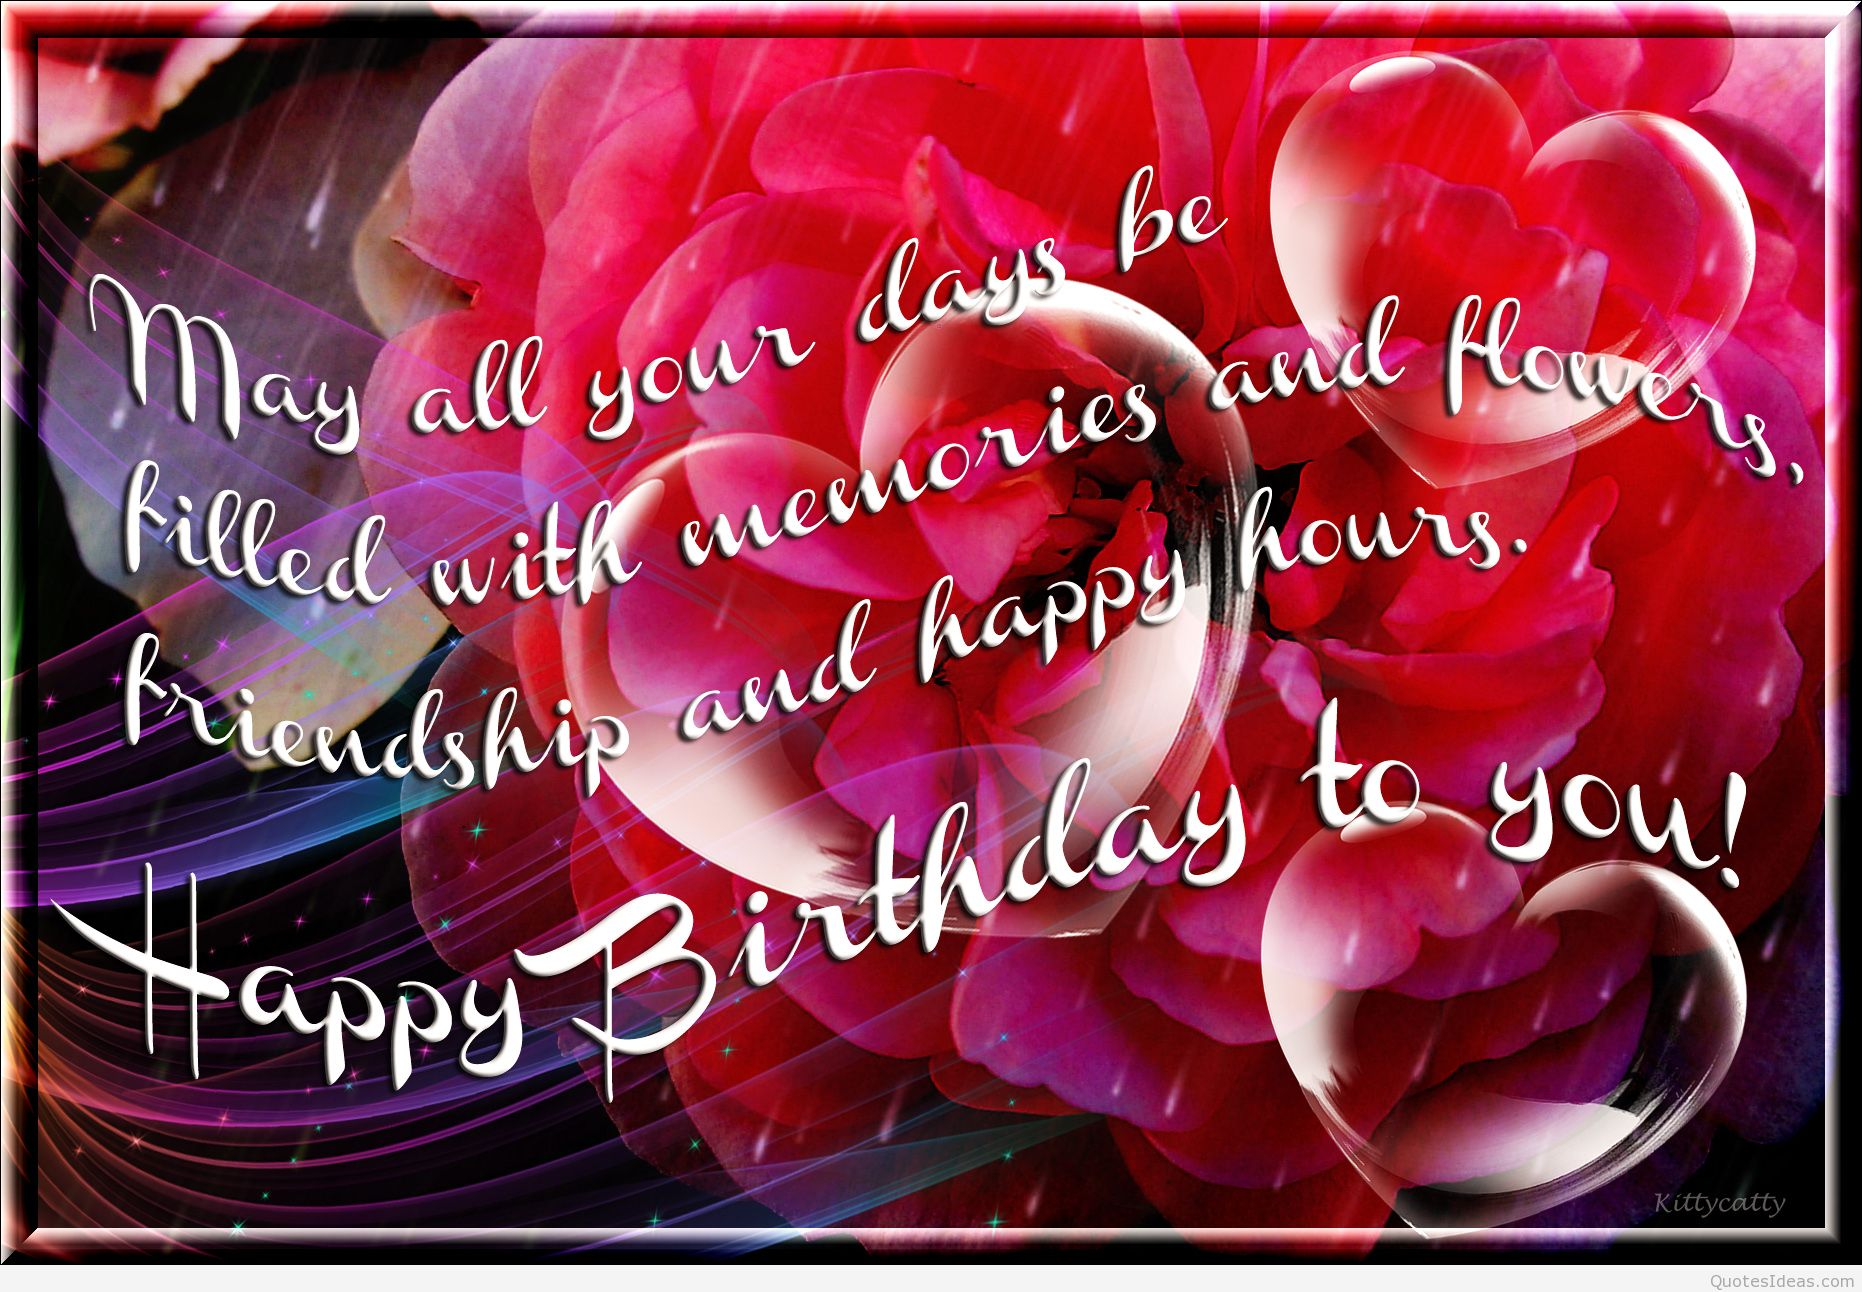 birthday images for friend download ; happy-birthday-wallpapers-with-quotes-3